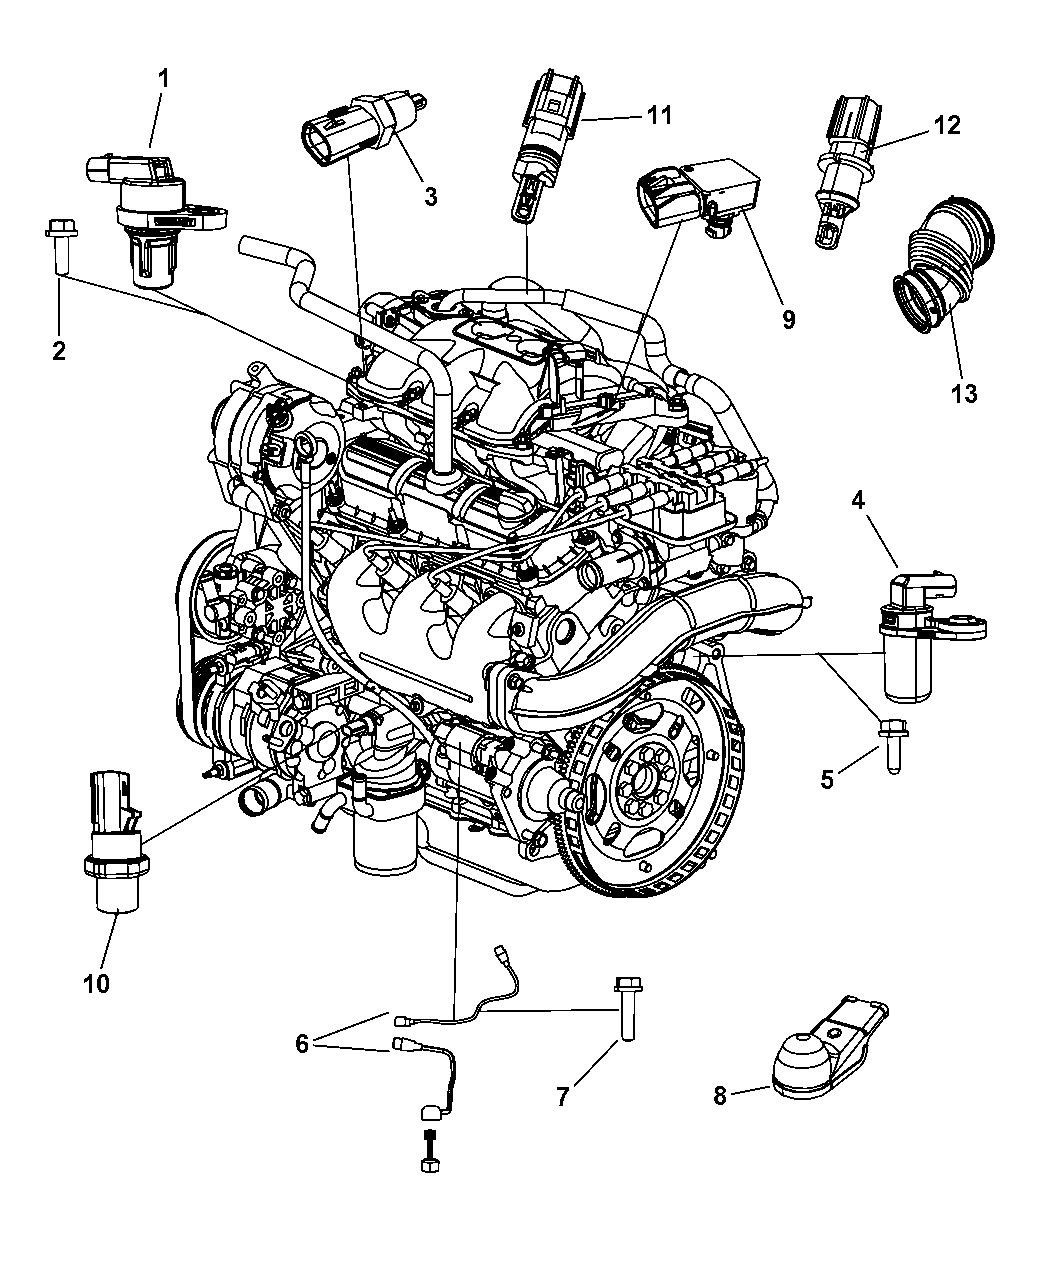 ford 3 8 v6 engine diagram 3 8 liter v6 engine diagram kipas www tintenglueck de  3 8 liter v6 engine diagram kipas www